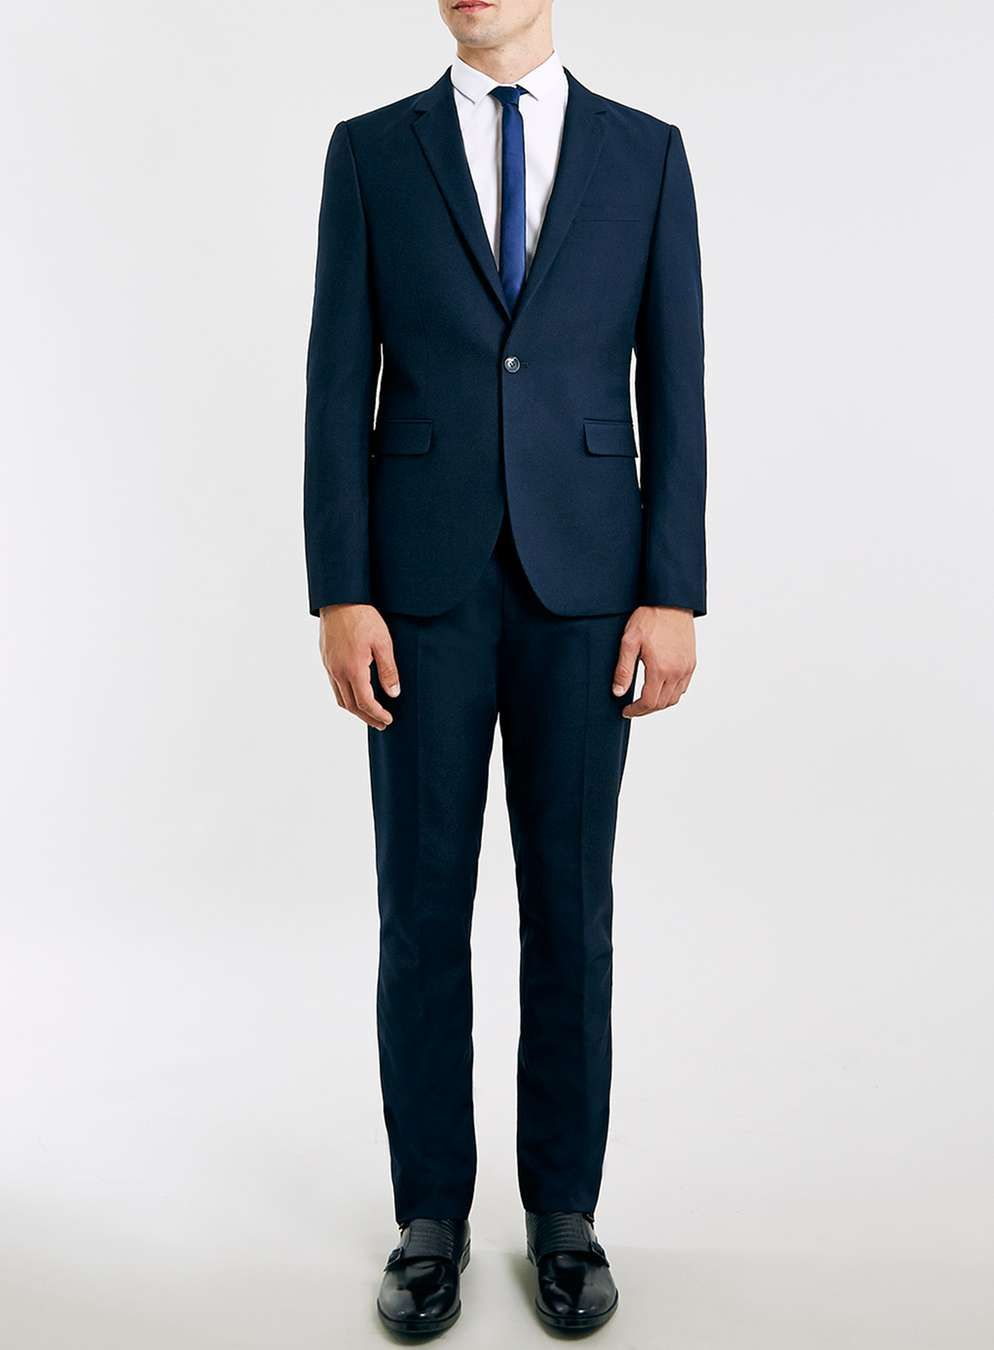 Navy Twill Skinny Fit Suit   prom   Pinterest   Skinny fit suits and ...